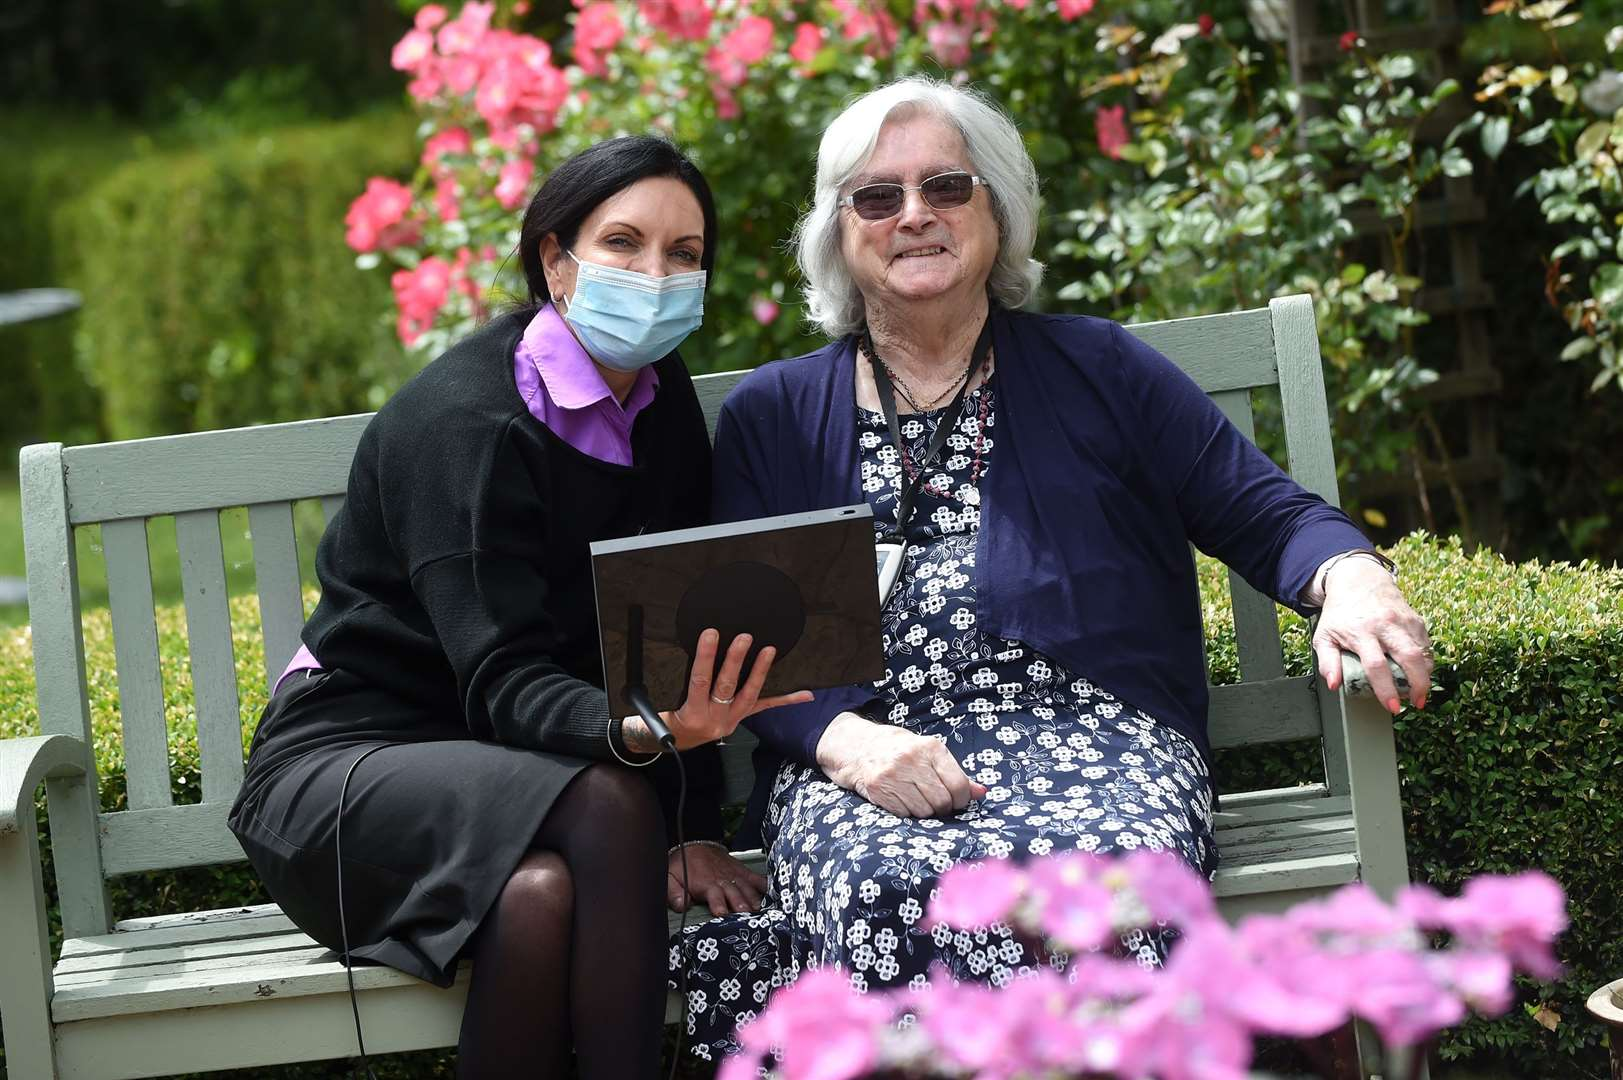 St Josephs Care Home in Sudbury has been taking part on a government backed pilot scheme to help residents keep in touch with their loved ones during the lockdown..Pictured: Deputy Manager Jacqui Court and resident Marie Gould on the portal device....PICTURE: Mecha Morton .... (36322432)